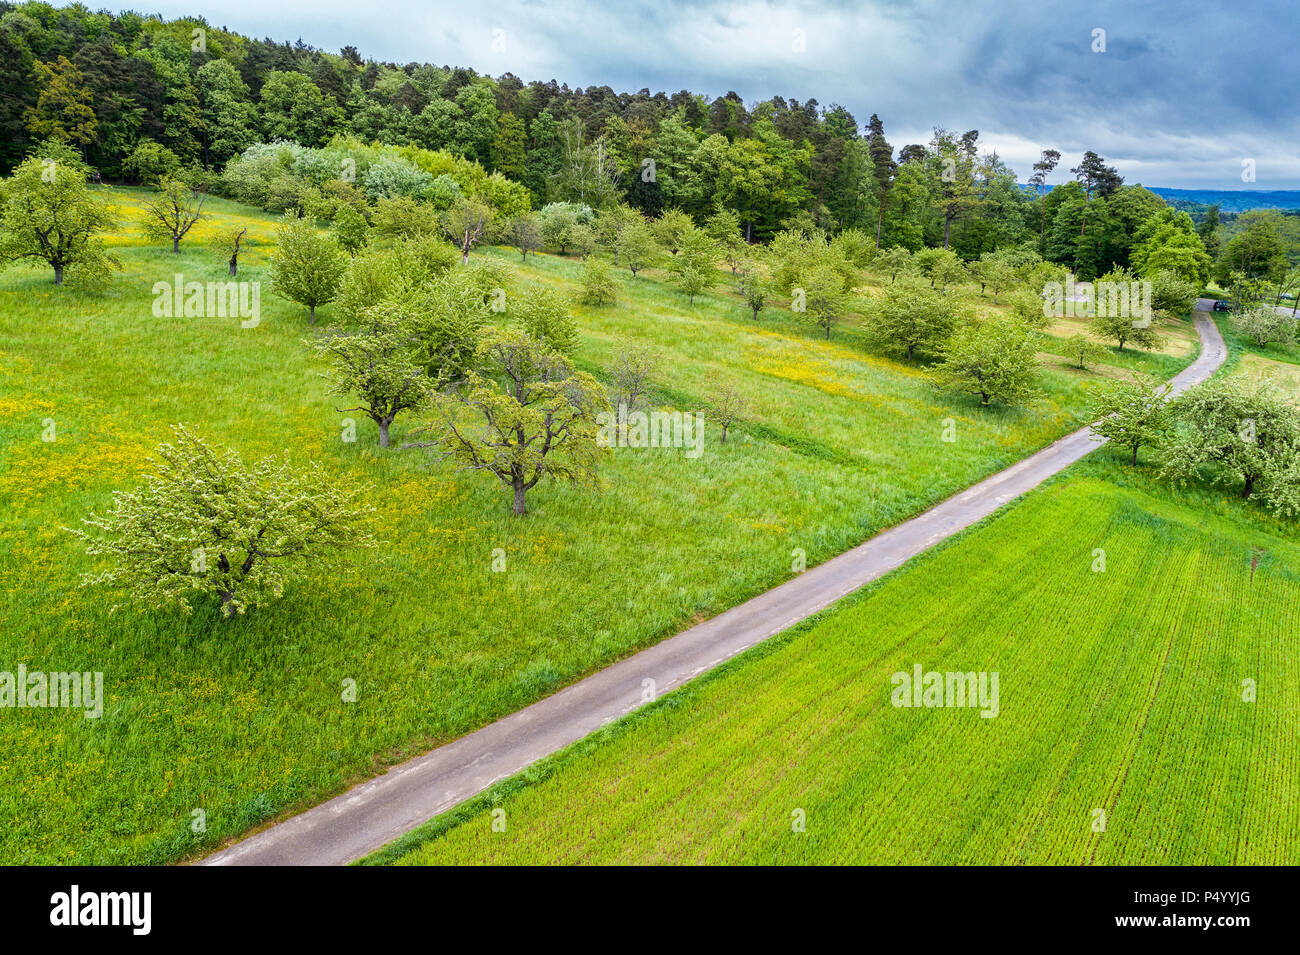 Germany, Baden-Wuerttemberg, Swabian Franconian forest, Rems-Murr-Kreis, Aerial view of meadow with scattered fruit trees and road - Stock Image